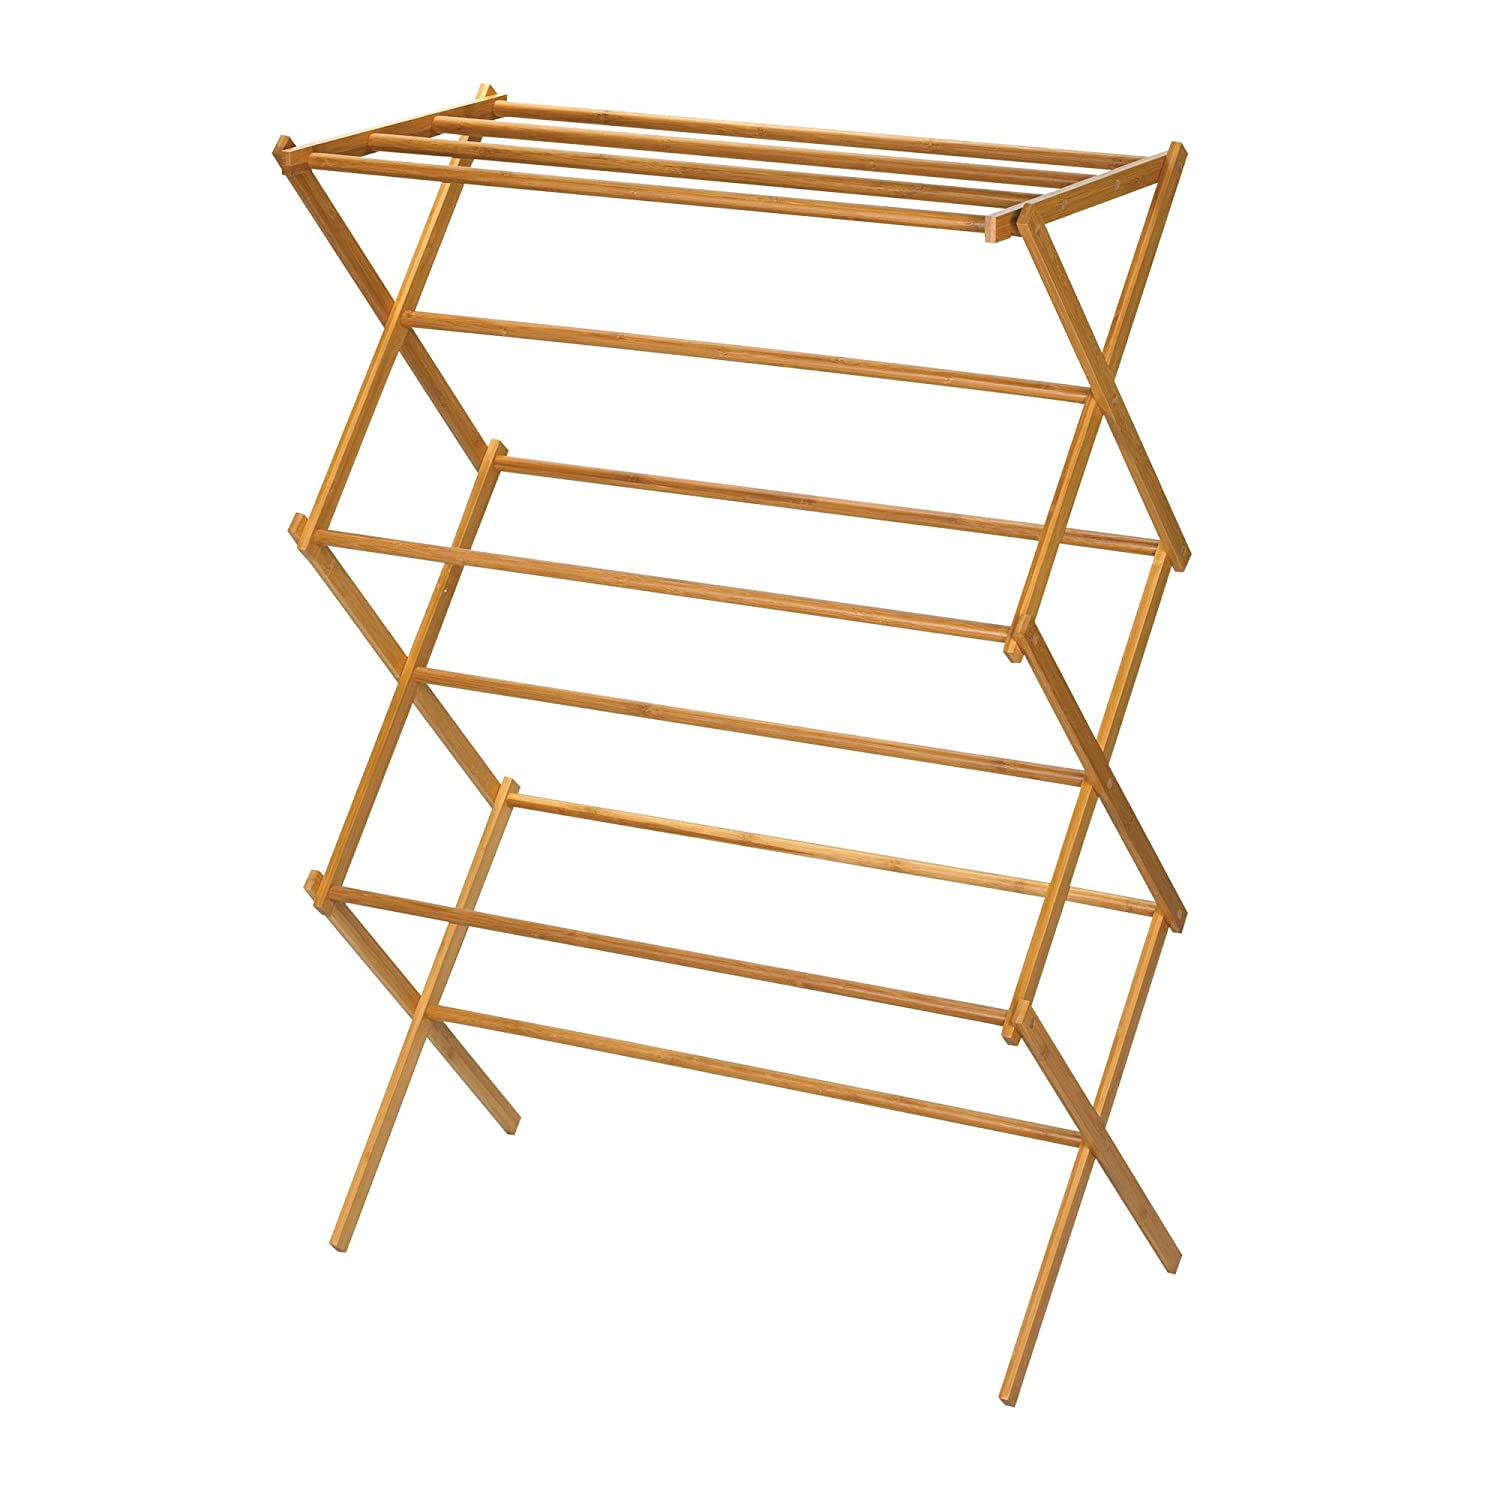 dry rack can the x depot drying racks honey n metal cloth b do white storage laundry organization room frame home folding